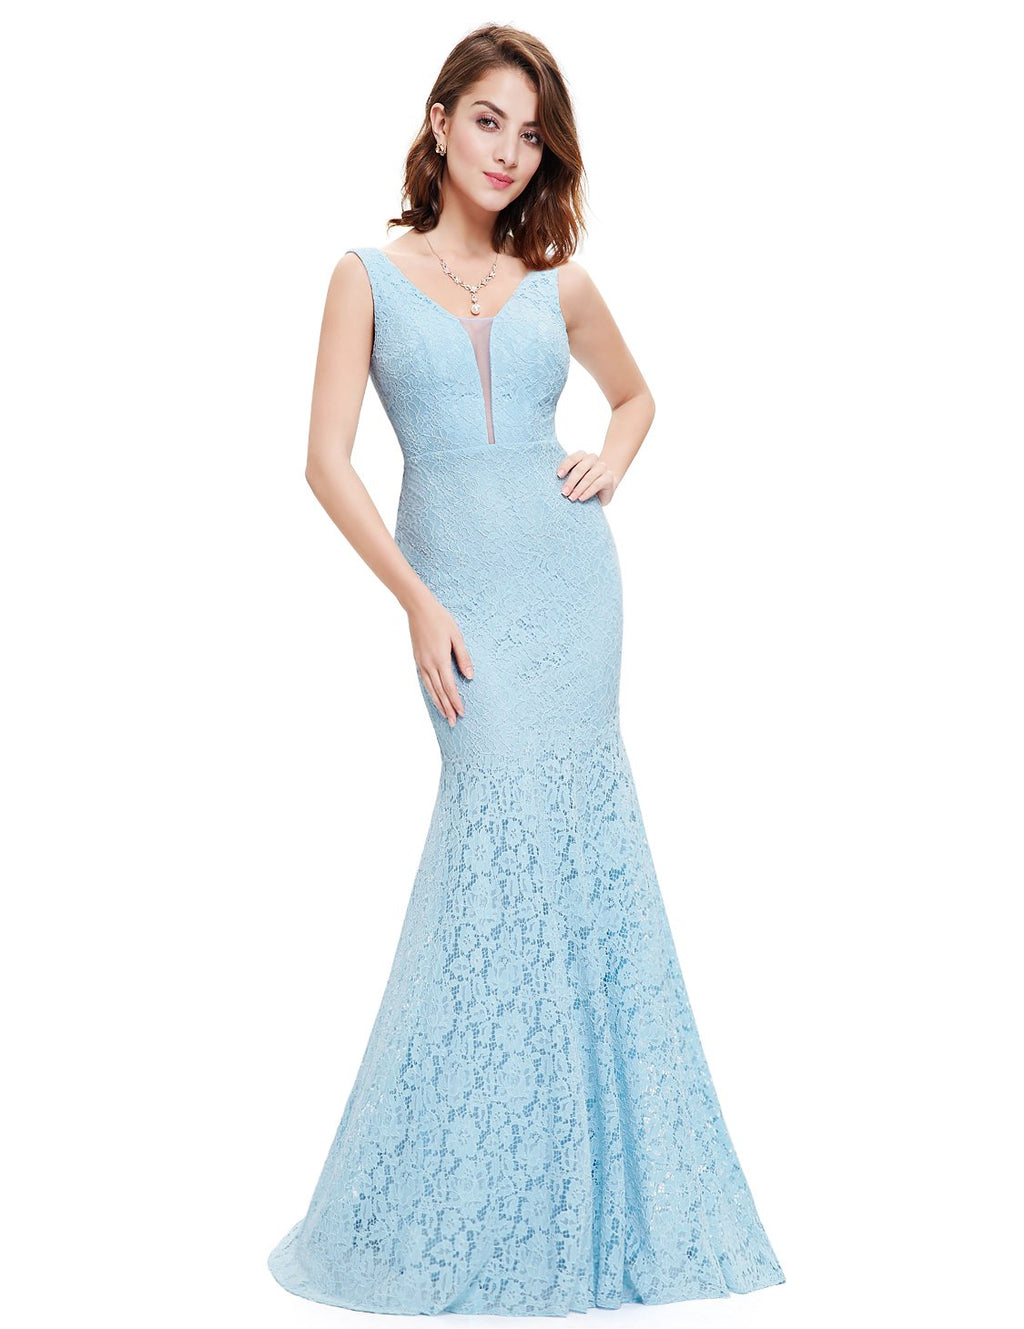 Sexy Fishtail Dress Blue